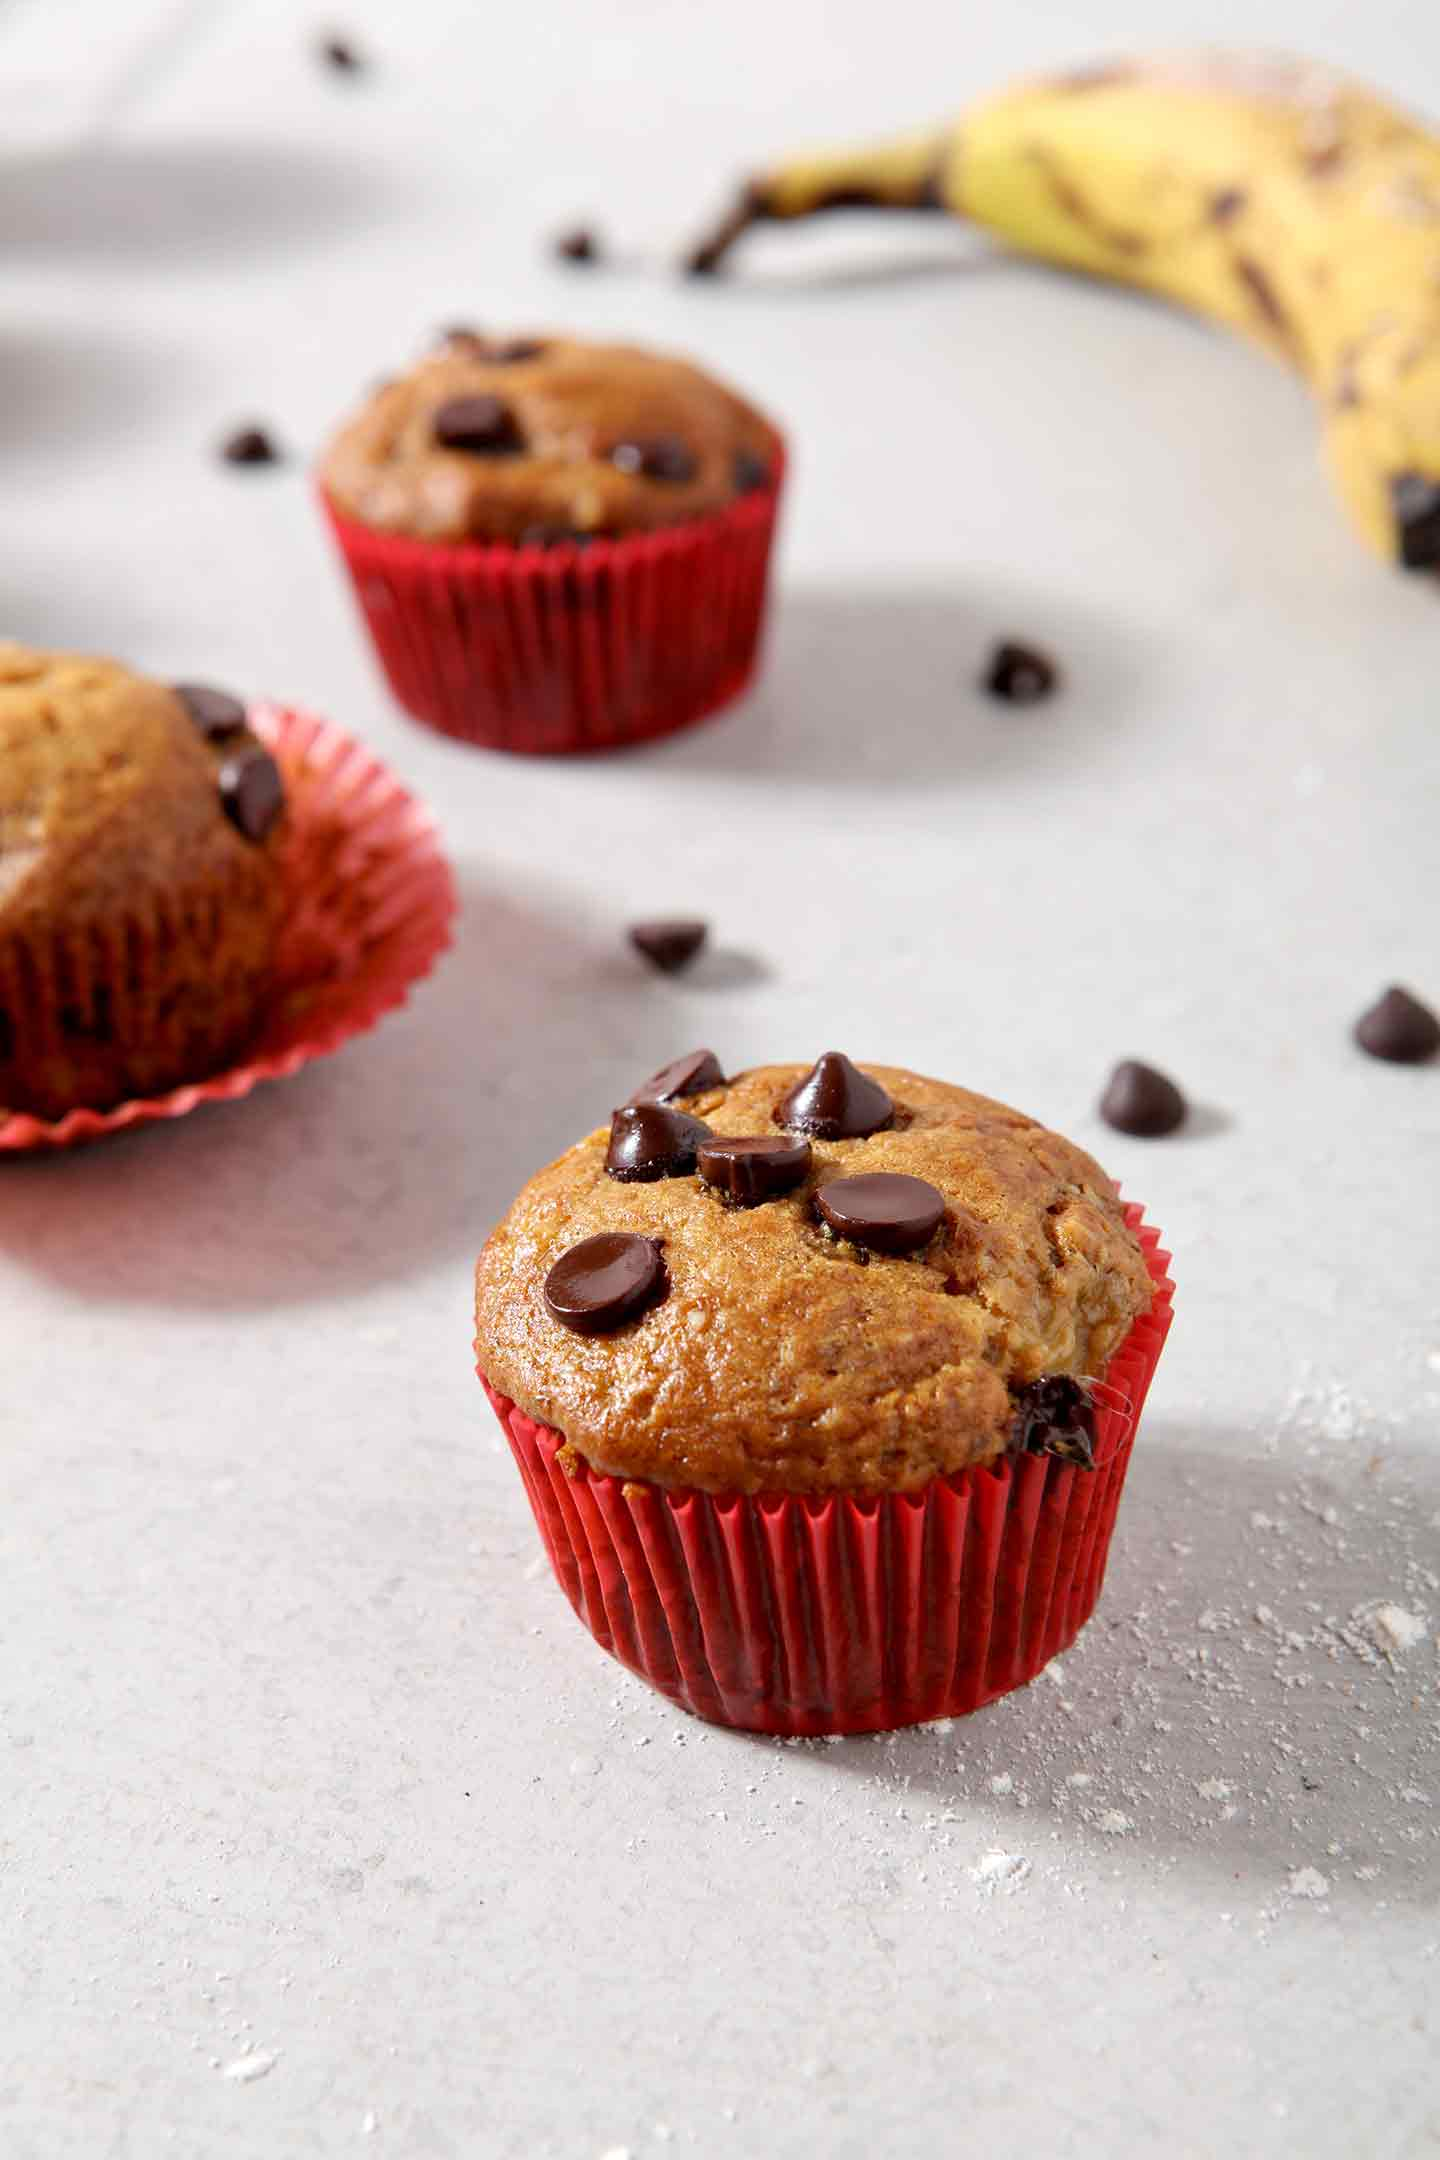 Three Vegan Banana Chocolate Chip Muffins sit on a grey background, surrounded by chocolate chips and bananas